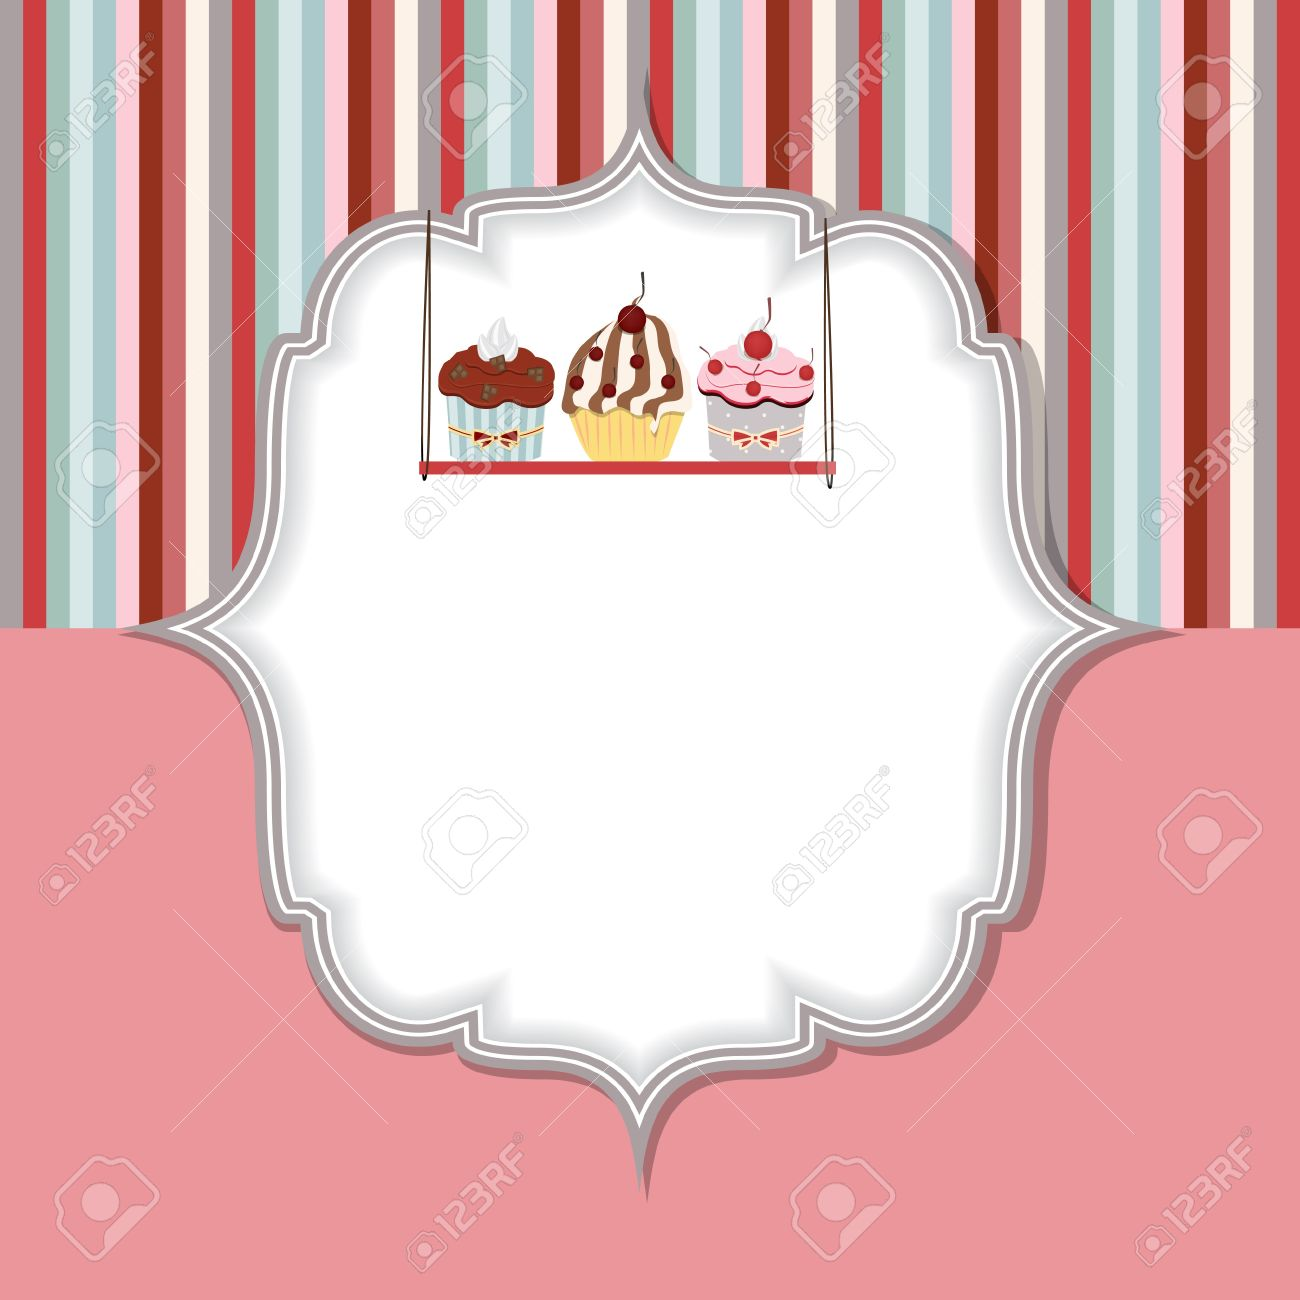 cupcake invitation card vector illustration royalty free cliparts